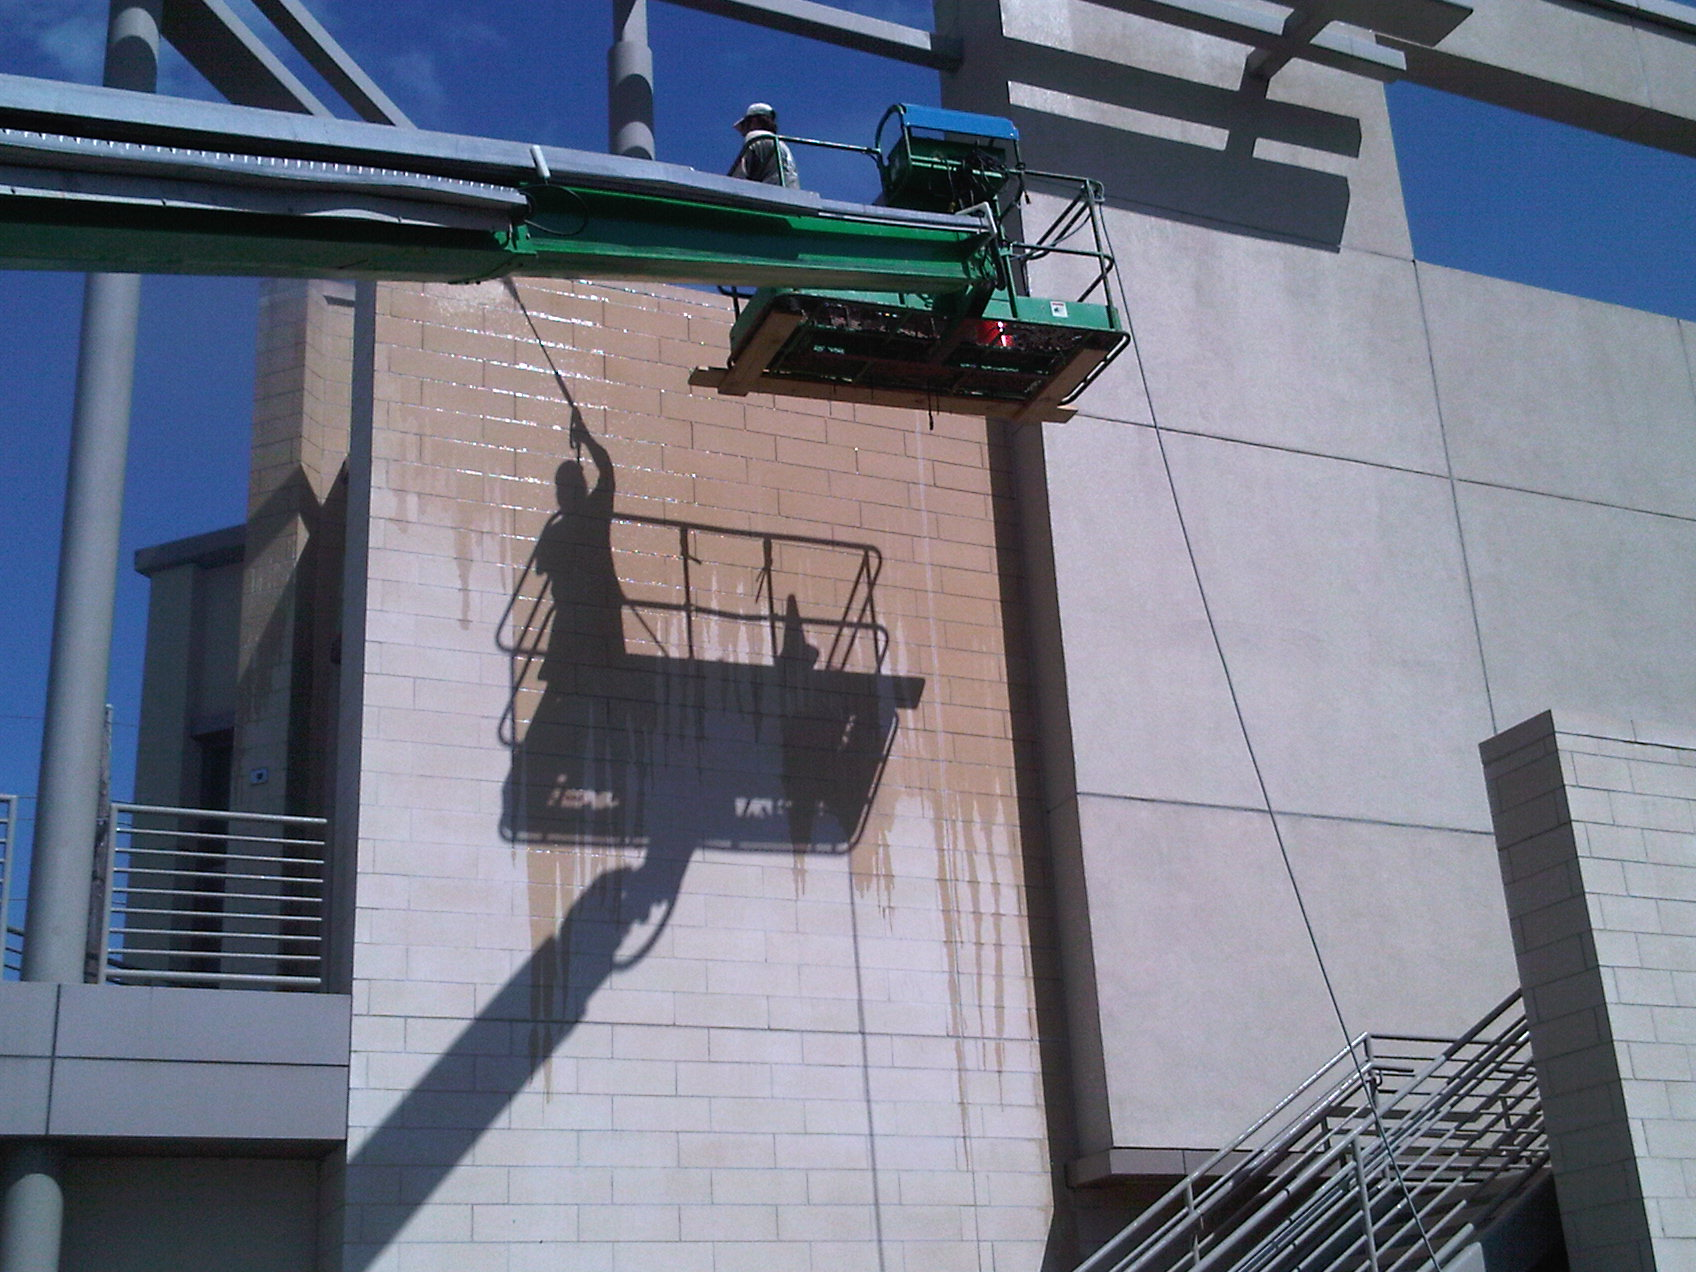 Commercial Power Washing in Savannah